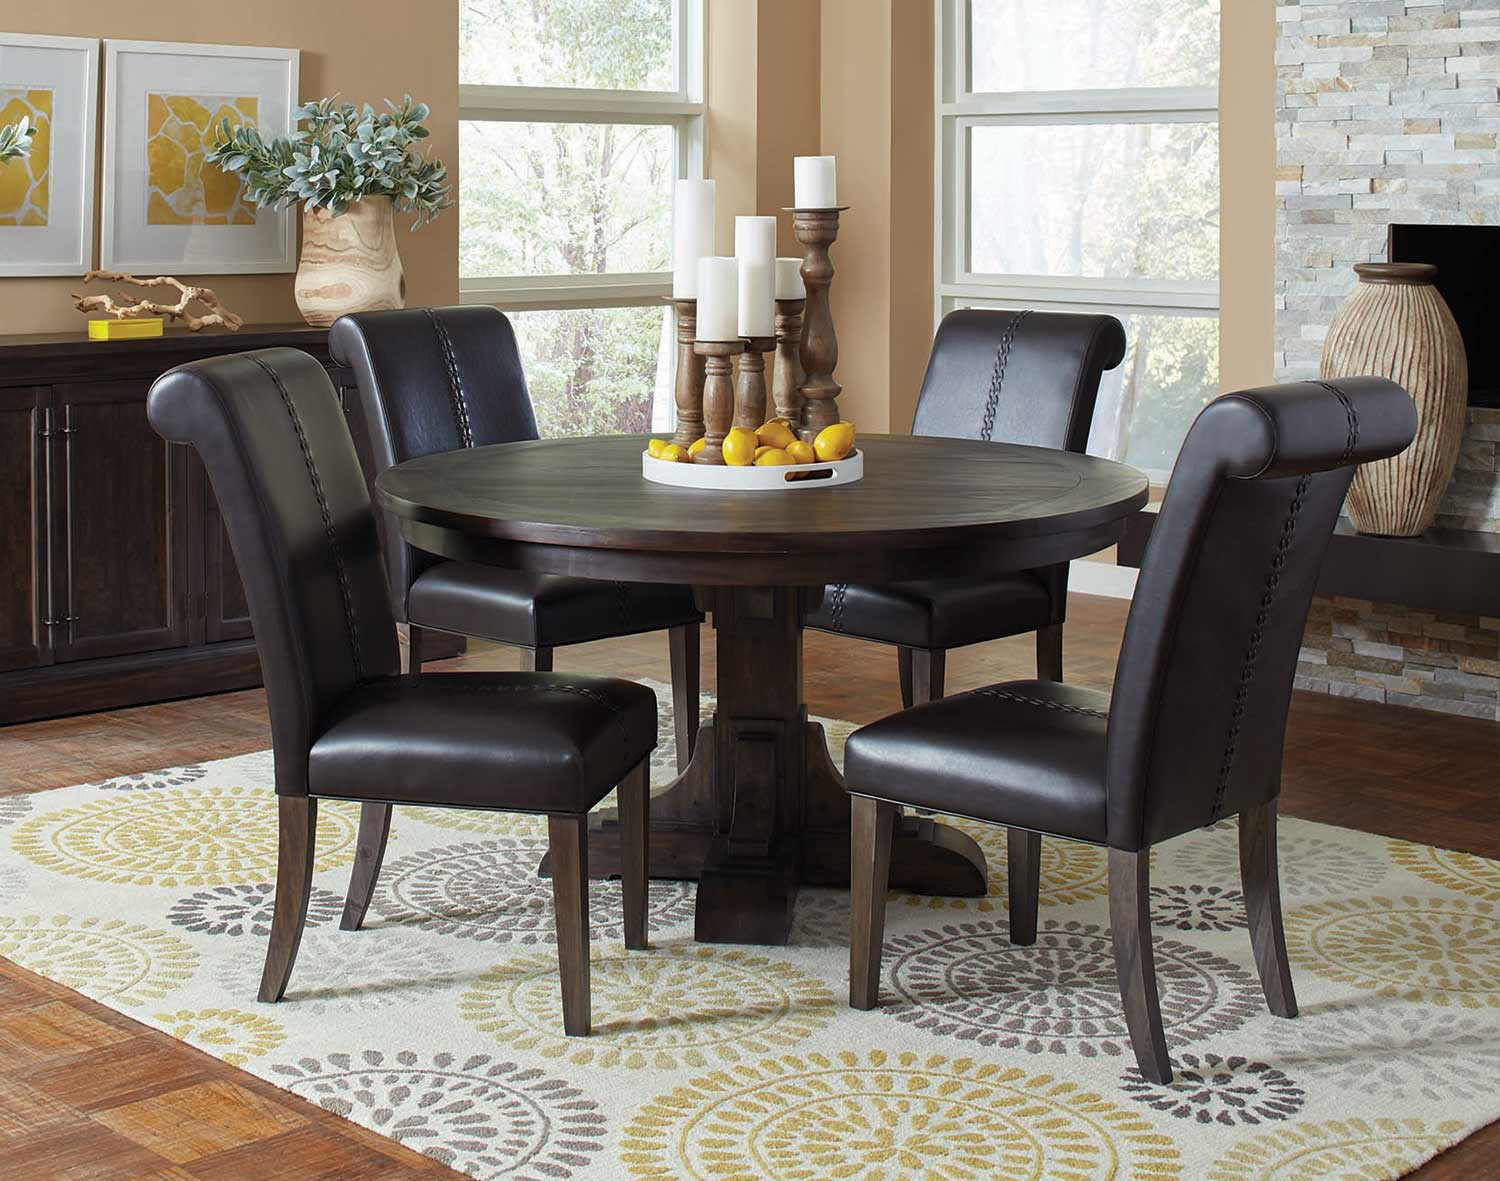 Coaster Weber Round Dining Set - Smokey Black